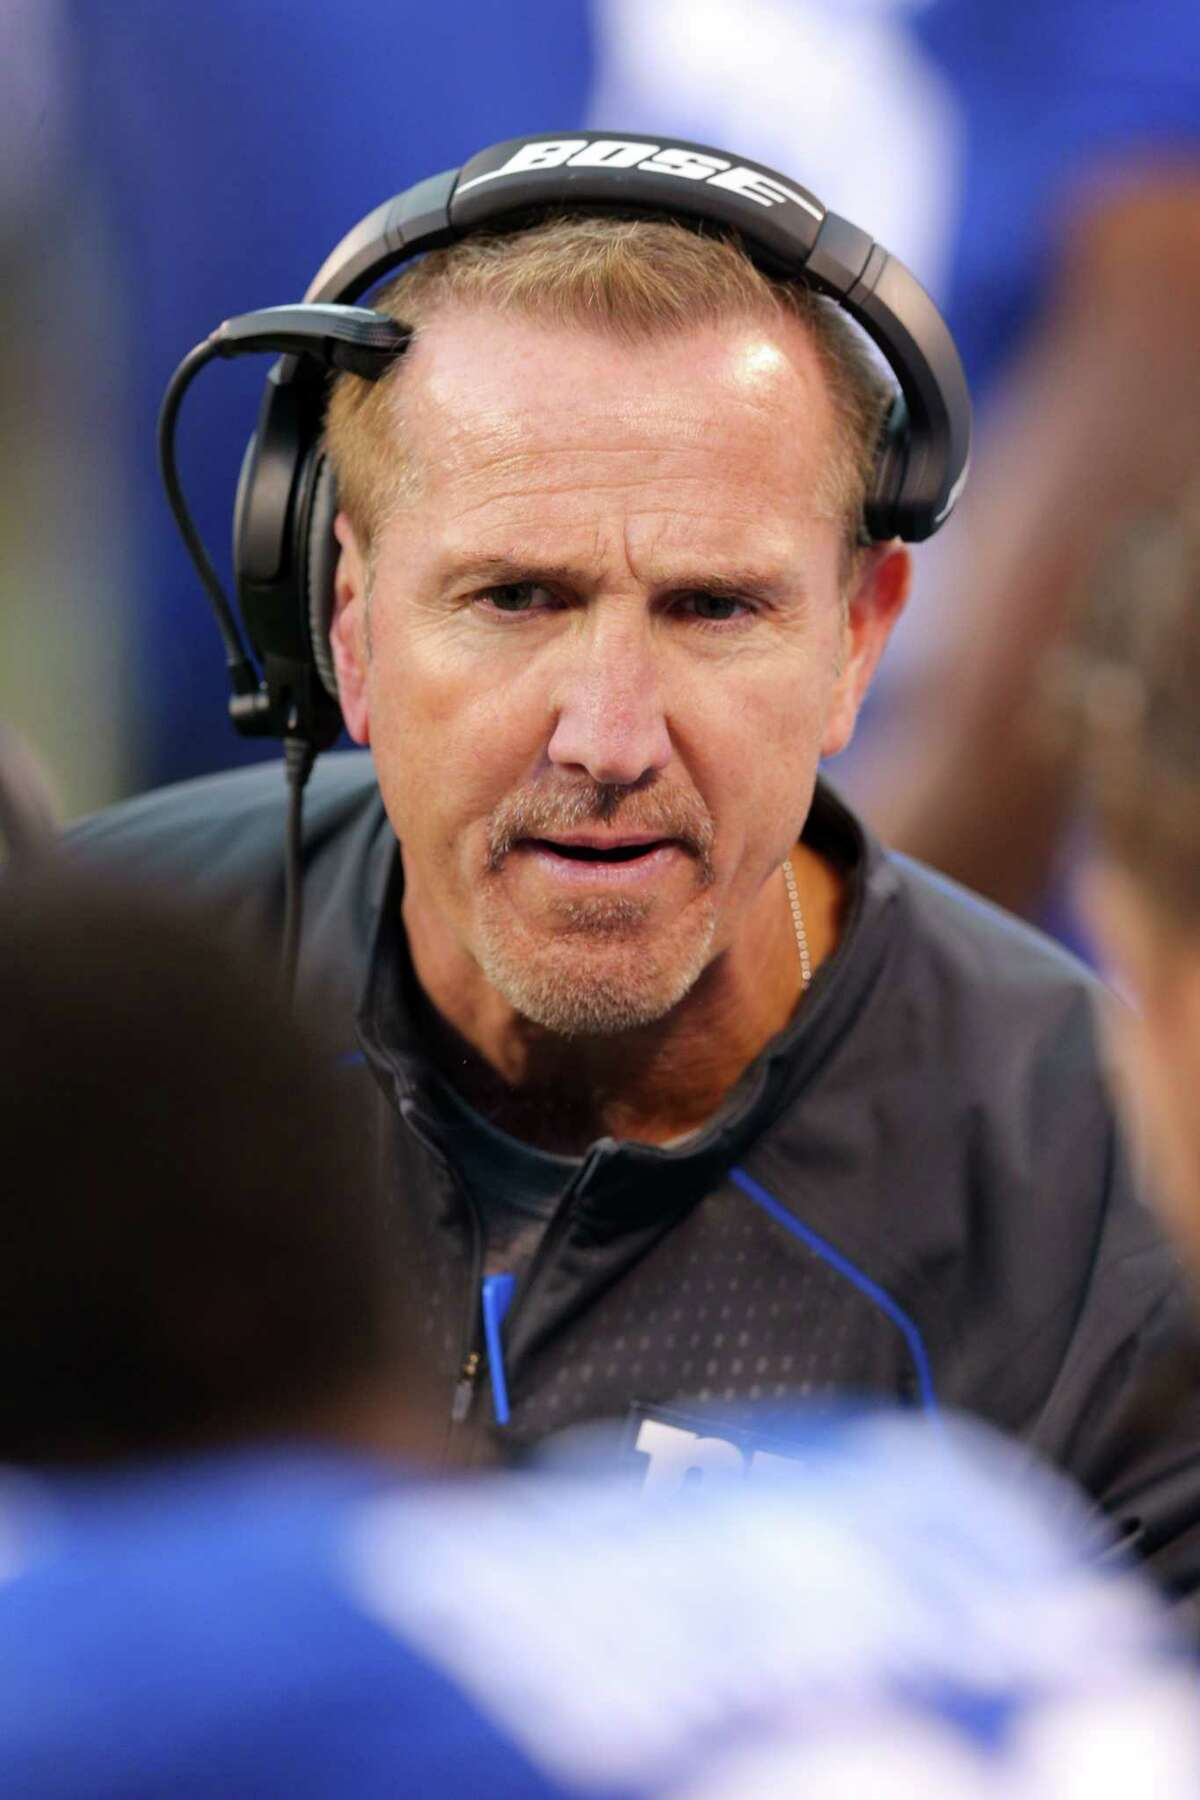 New York Giants defensive coordinator Steve Spagnuolo says he has put the 52-49 loss to the New Orleans Saints to rest.